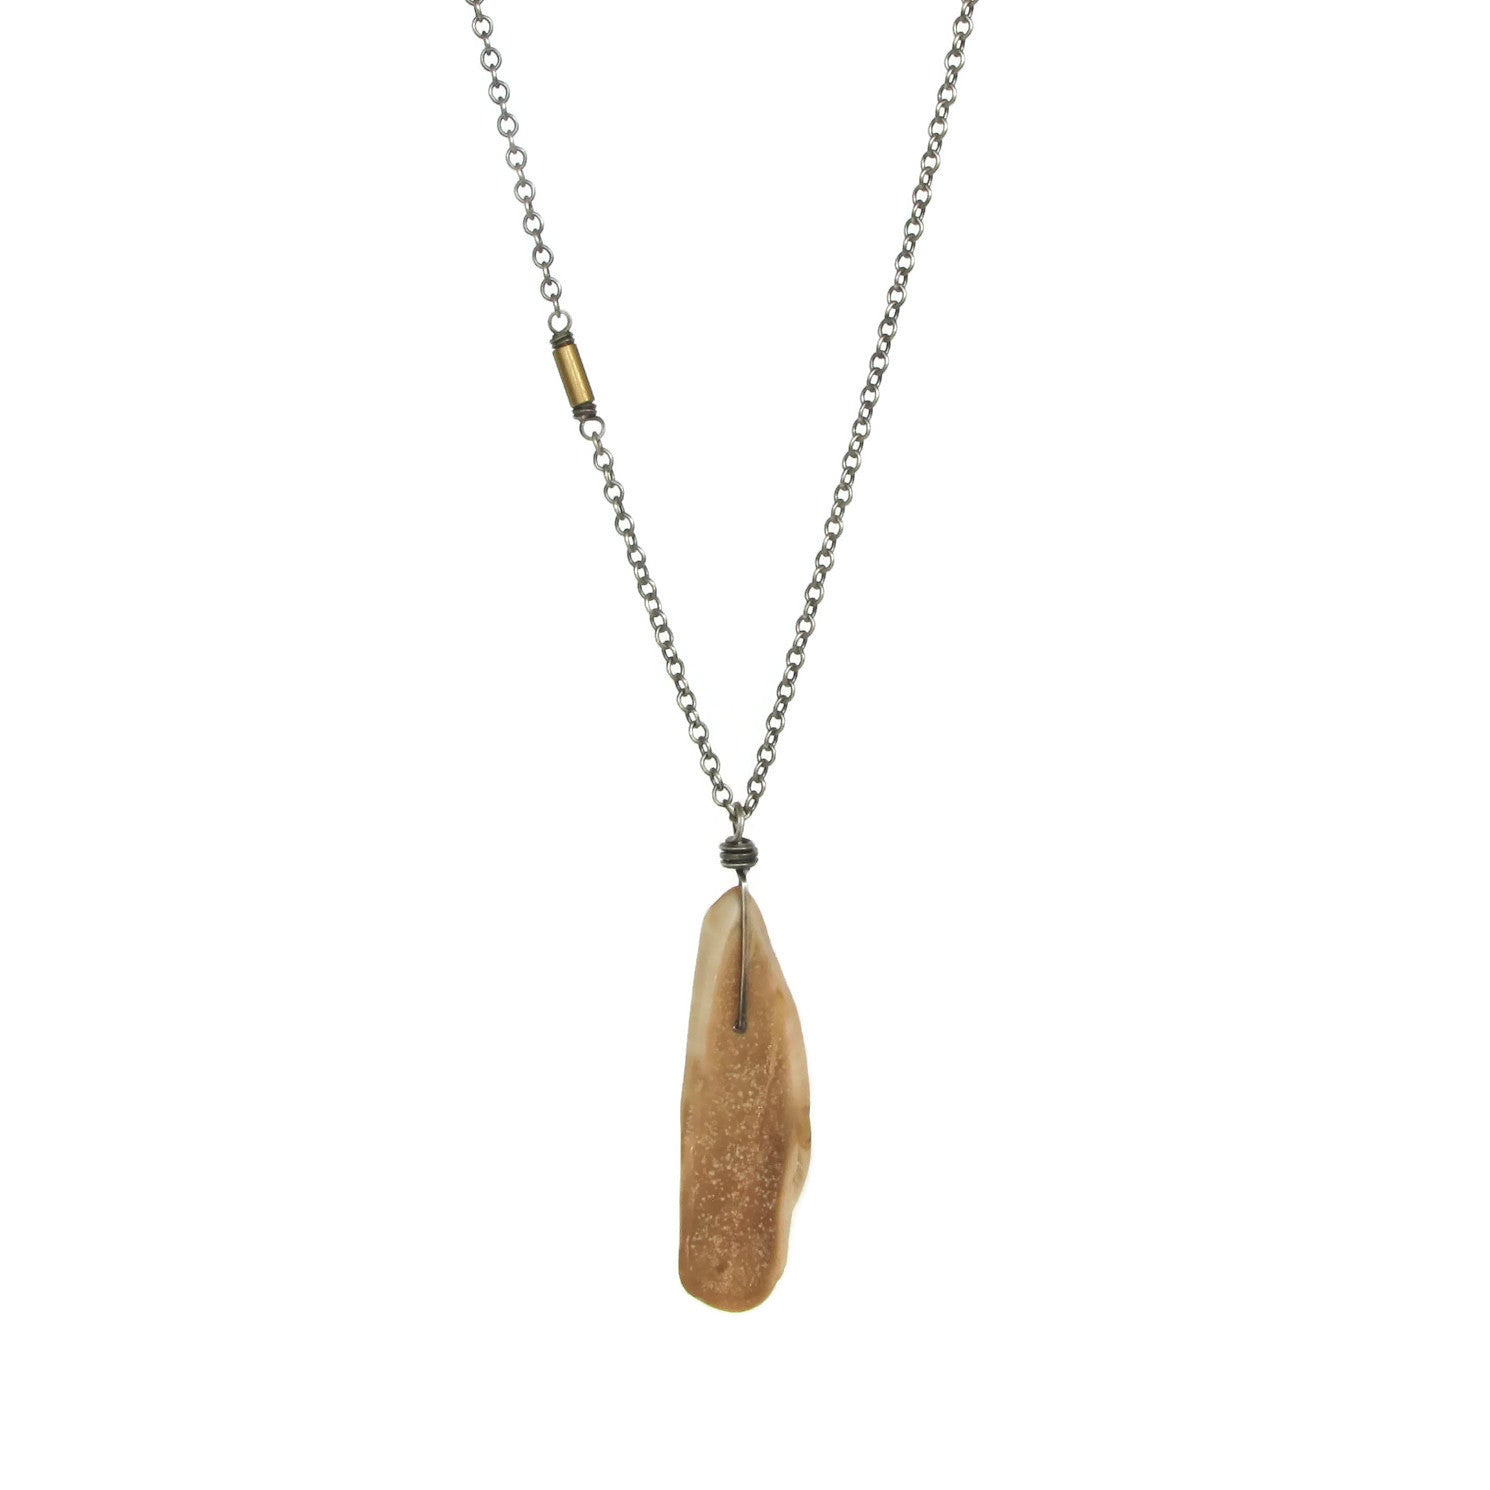 pyrite products iivishop pendant tusk